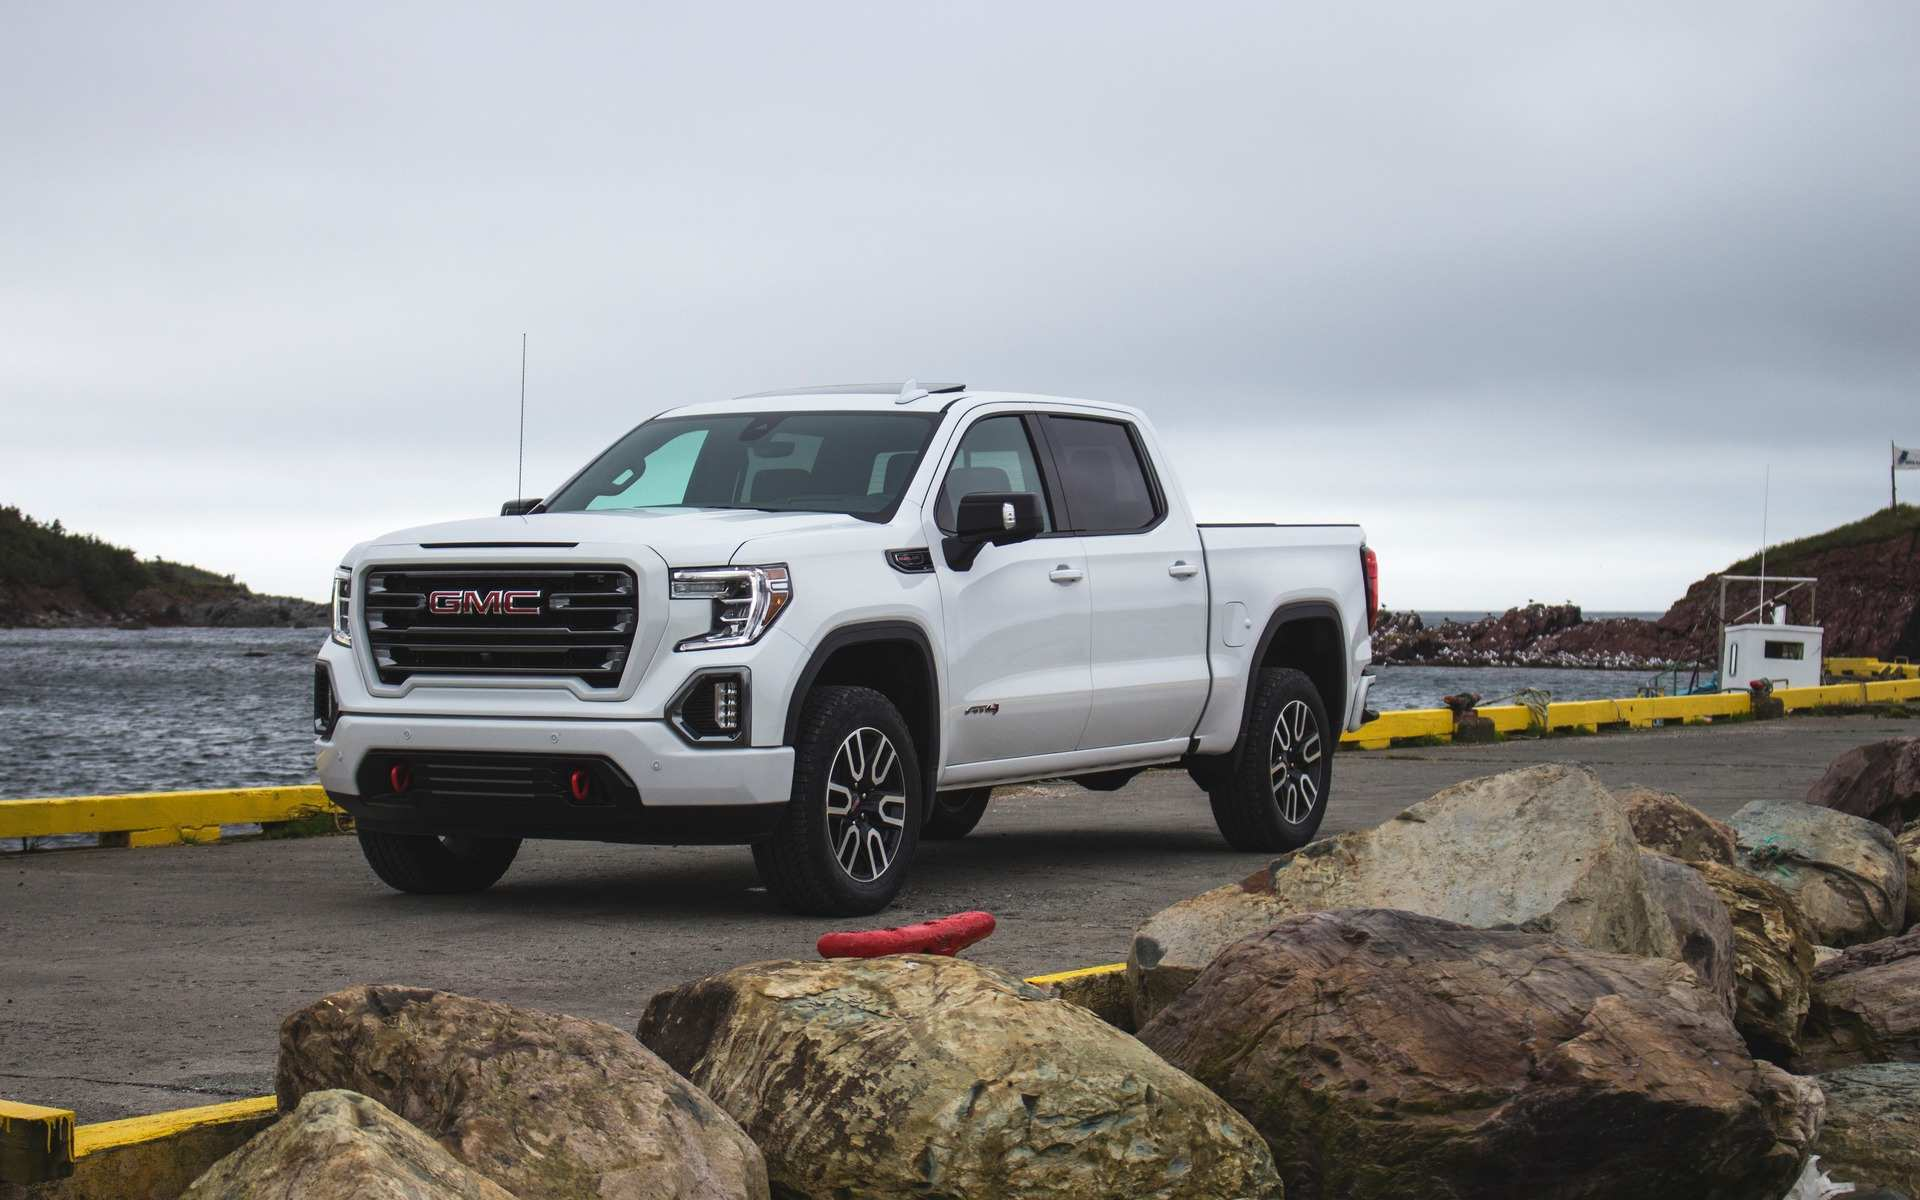 68 New 2019 GMC Sierra 1500 Diesel Rumors